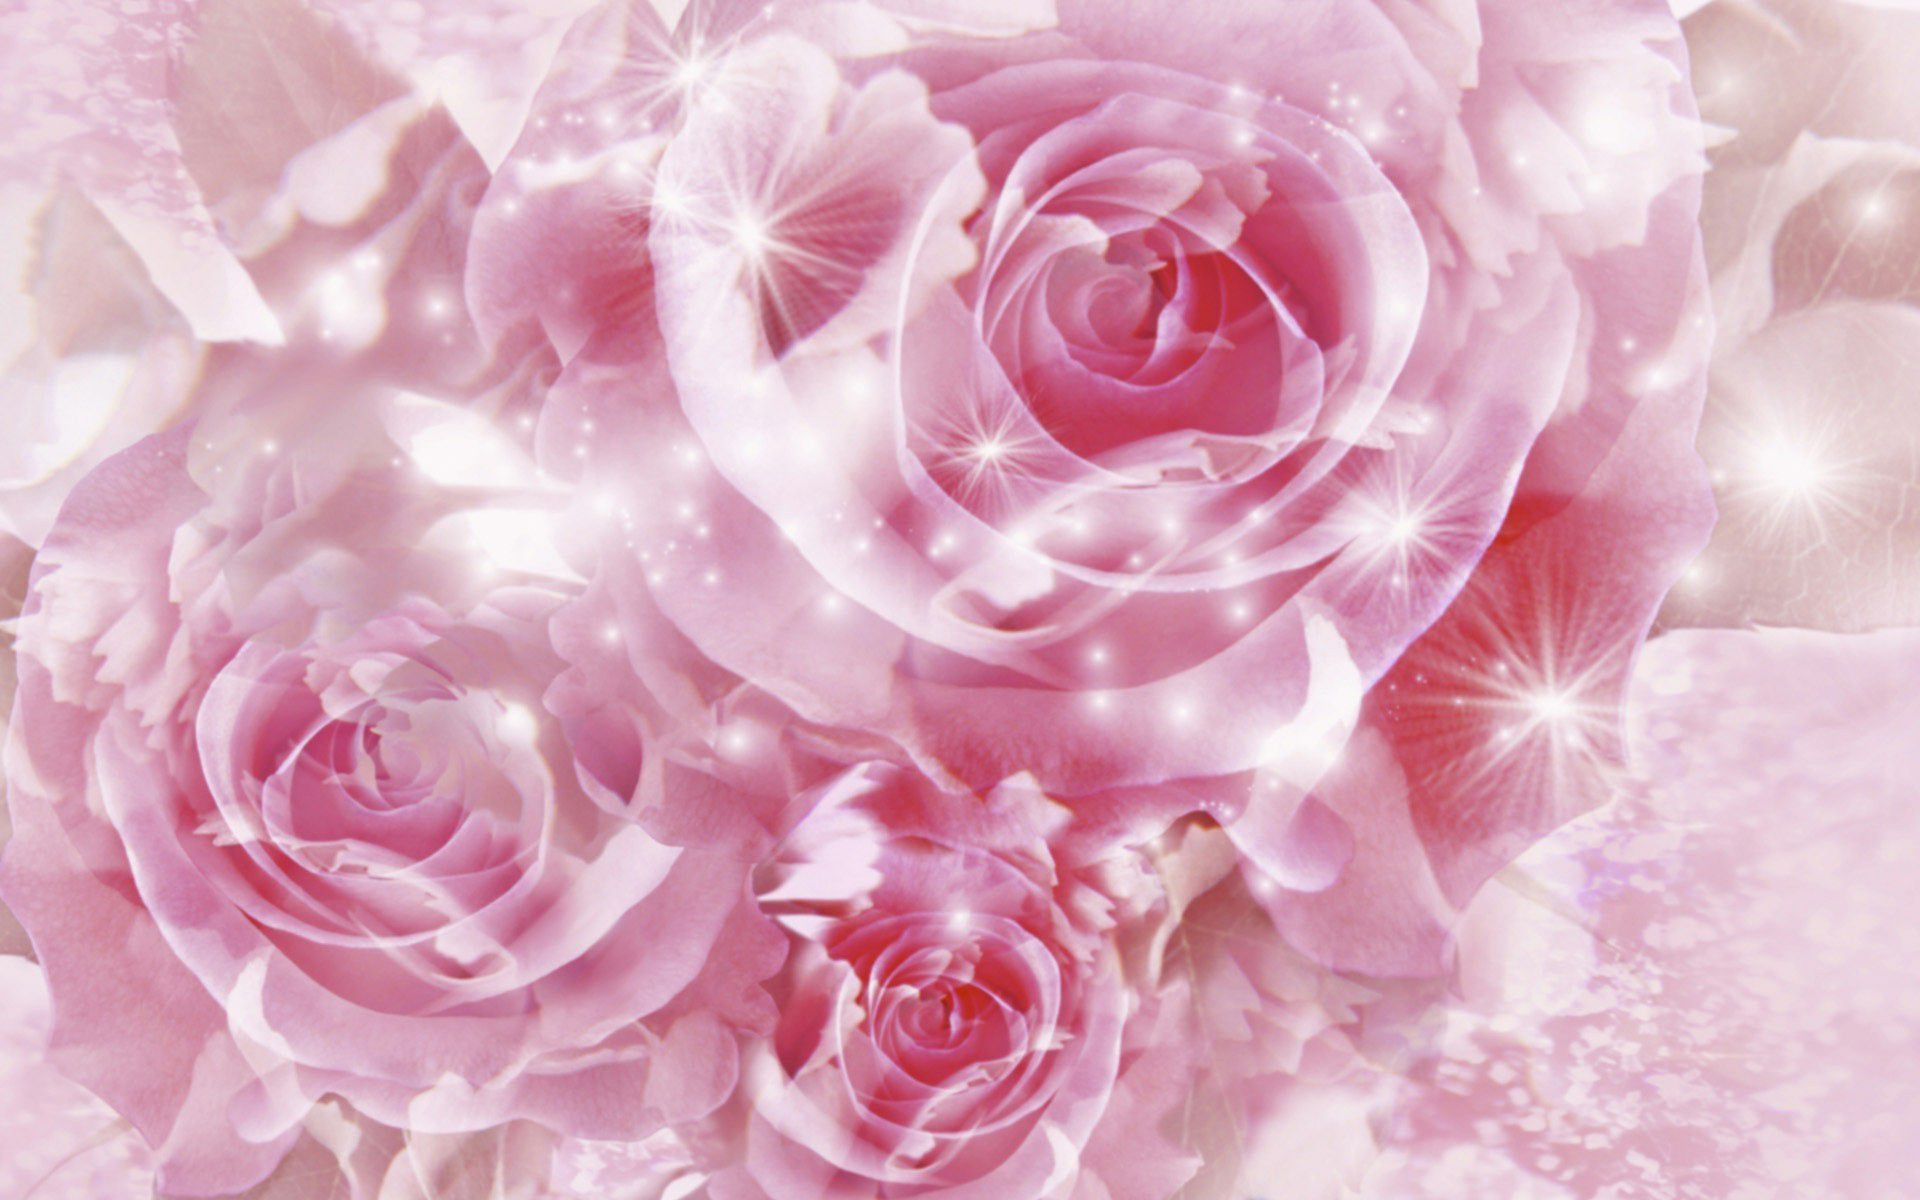 New Animated Rose Wallpapers For Desktop Gallery Pink Flowers Wallpaper Beautiful Pink Roses Flower Wallpaper